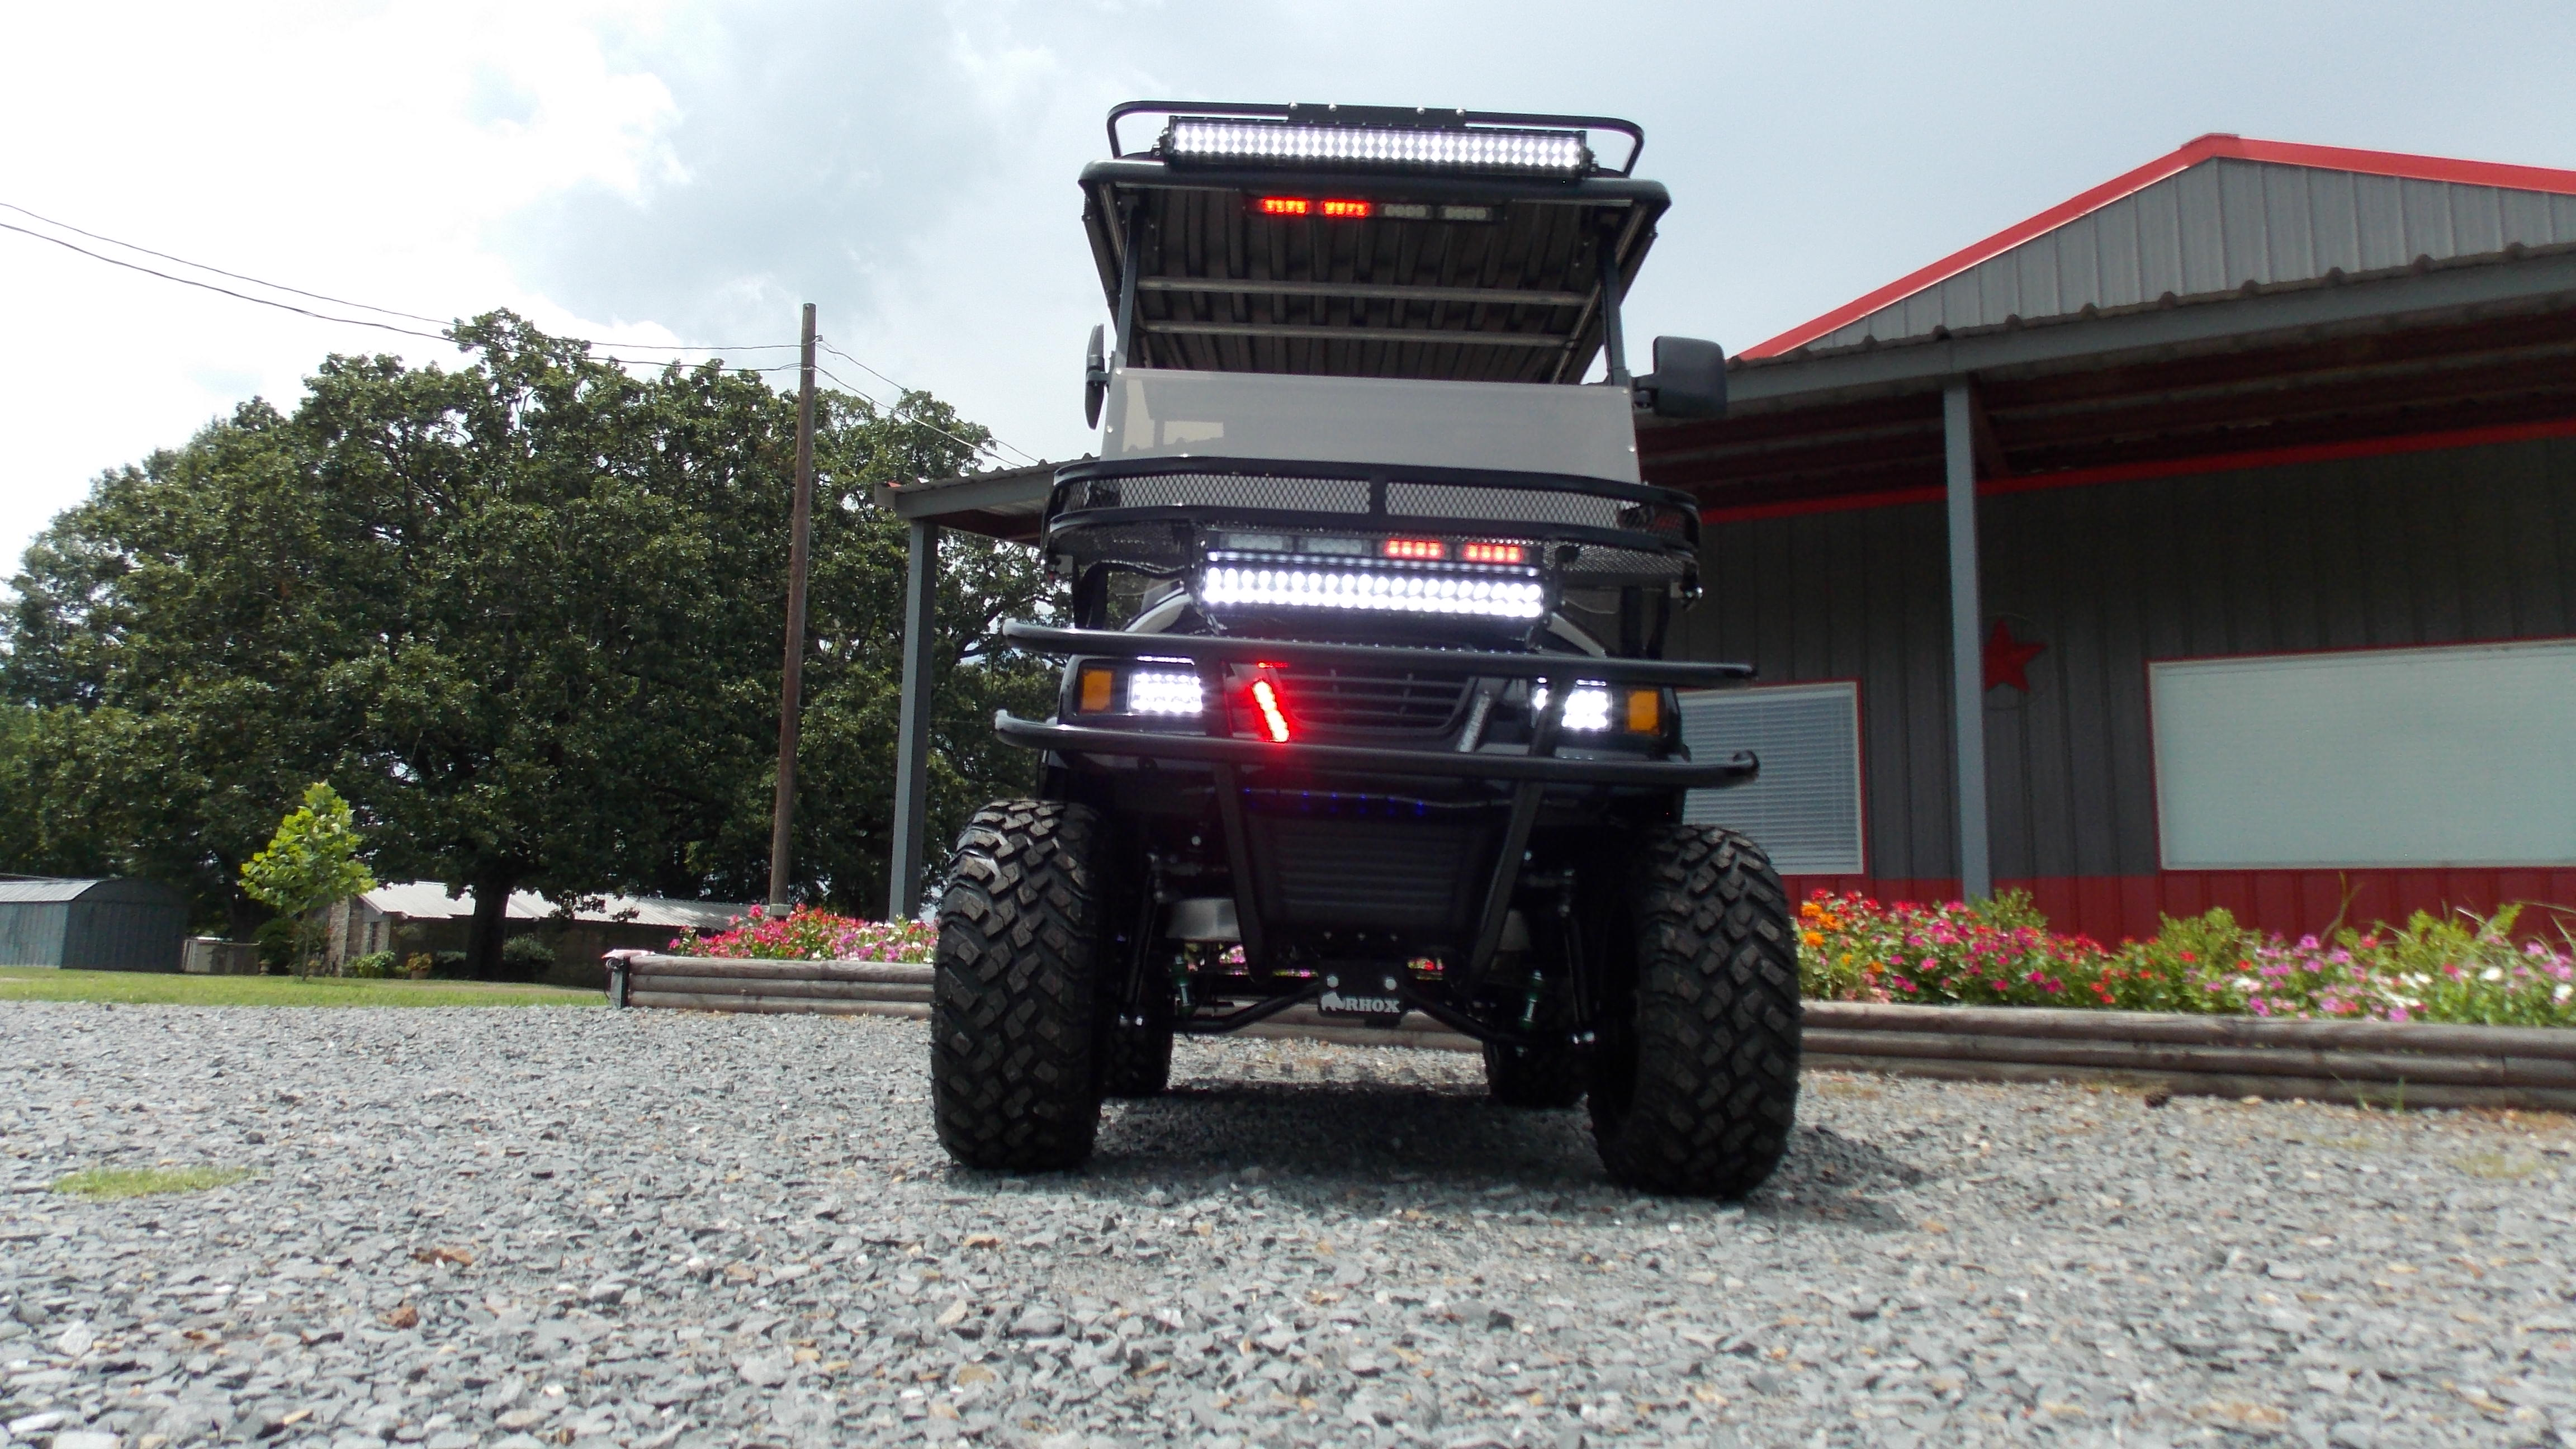 Prowl Edition Police Tatical Security Electric Lsv Golf Cart